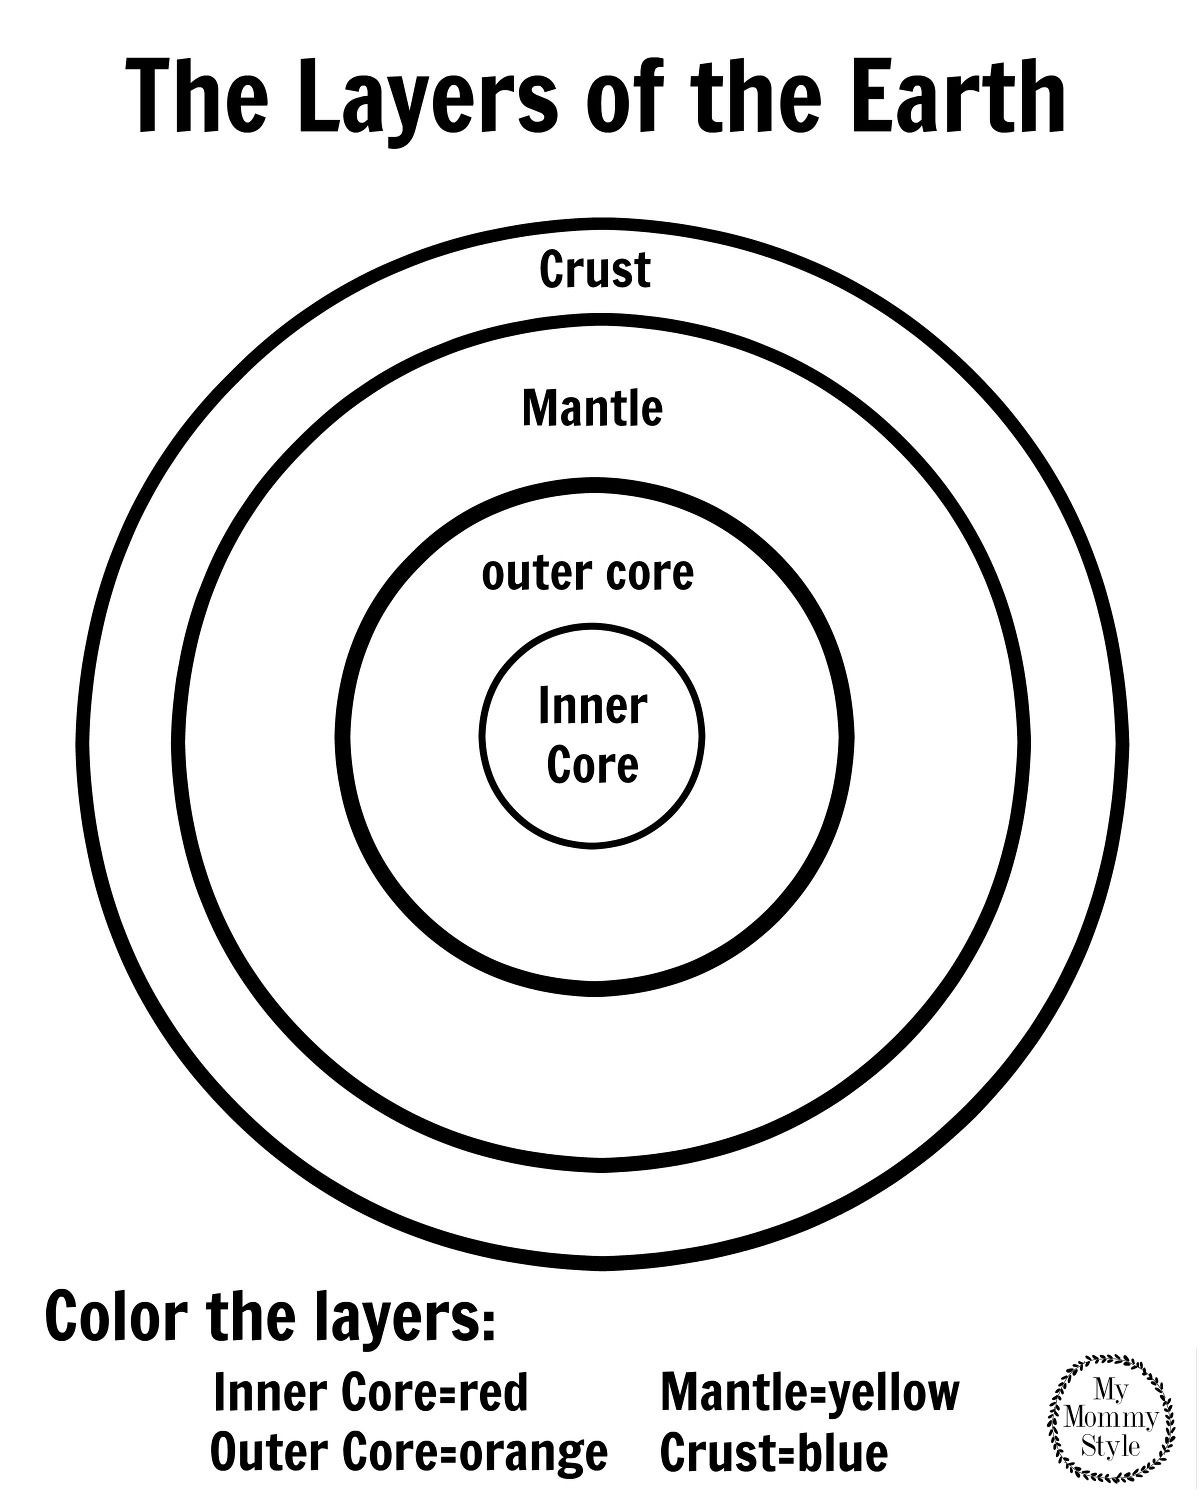 Earth Layers Worksheet Pdf the Layers Of the Earth for Kids Free Printable My Mommy